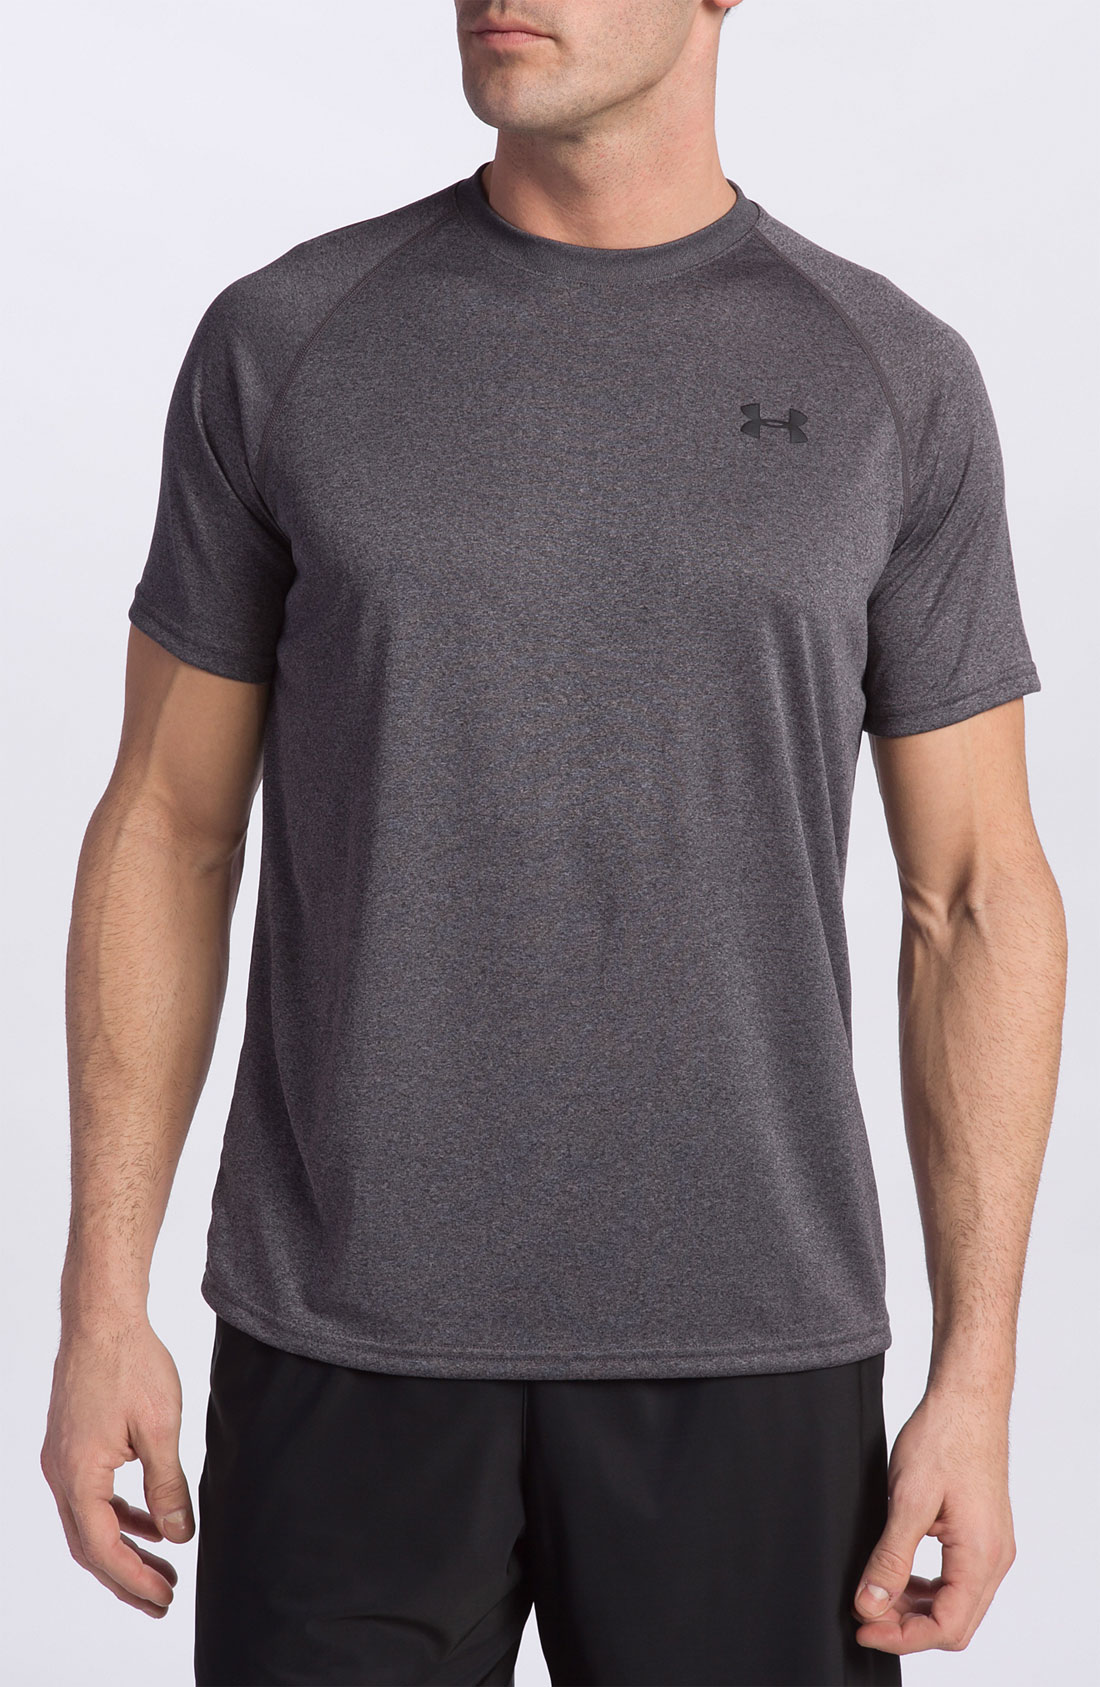 Under Armour 39 Ua Tech 39 Loose Fit Short Sleeve T Shirt In